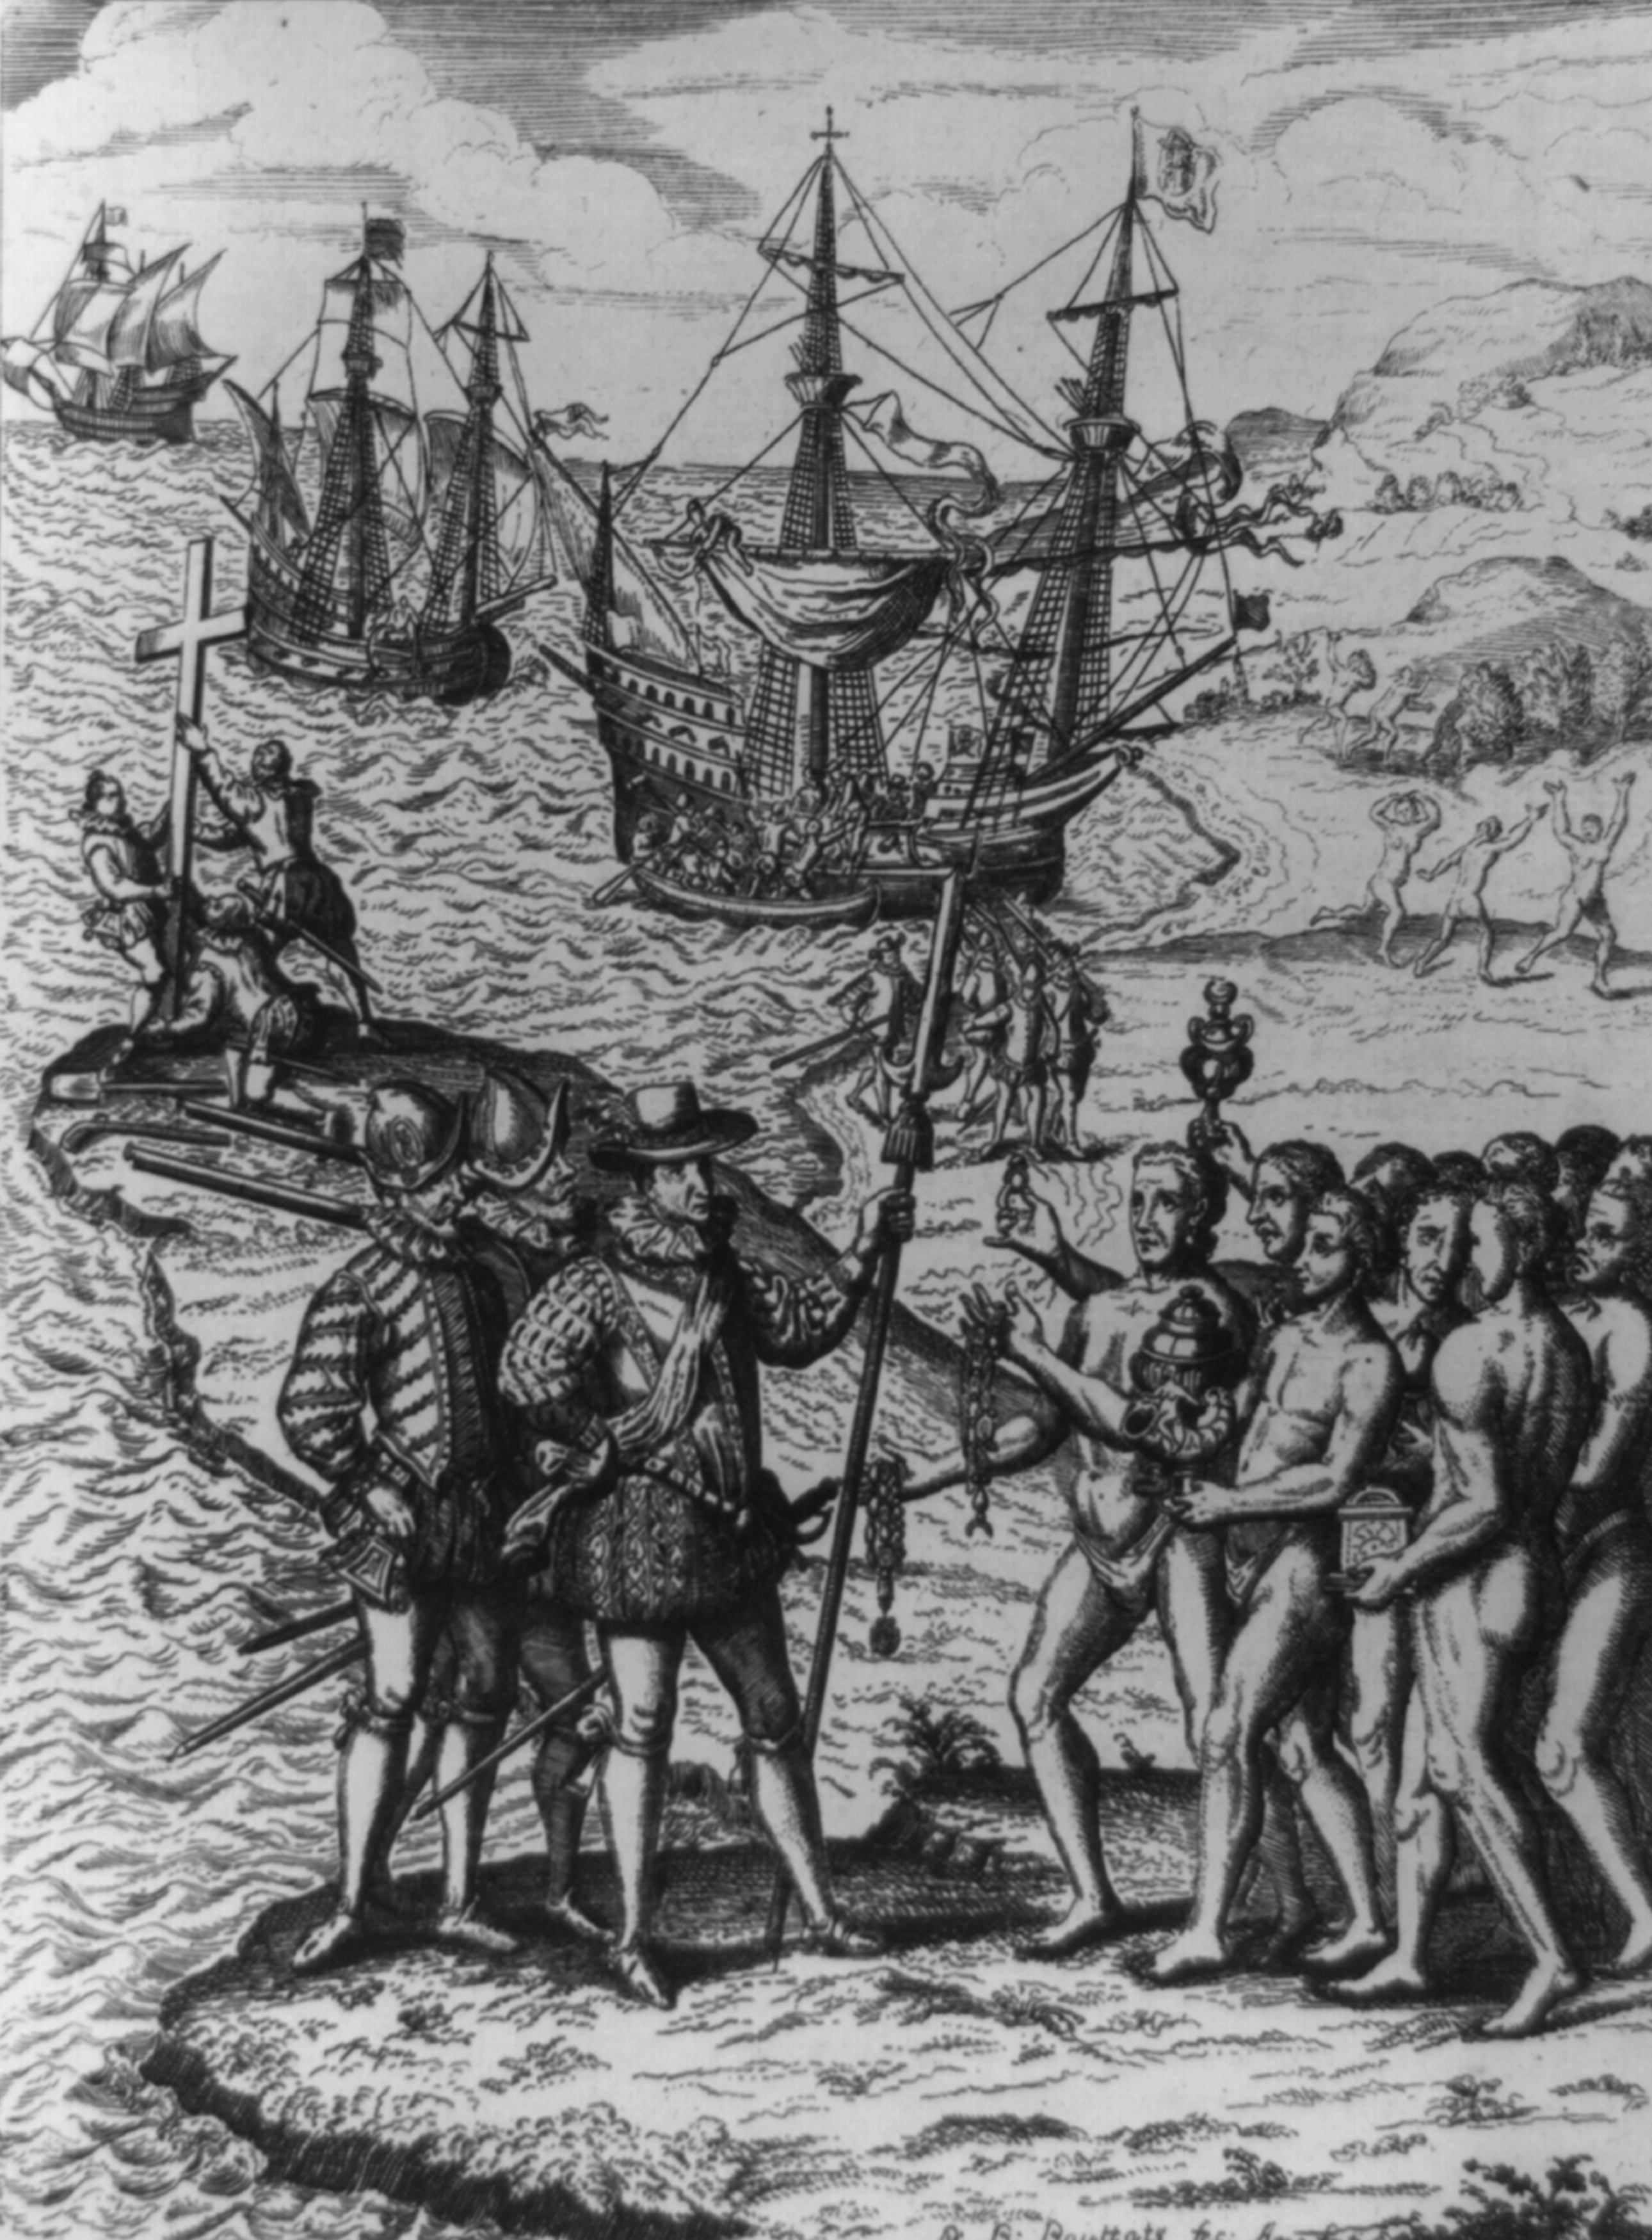 Image Of Christopher Columbus Being Greeted By Native People Upon His Landing On The Island Of